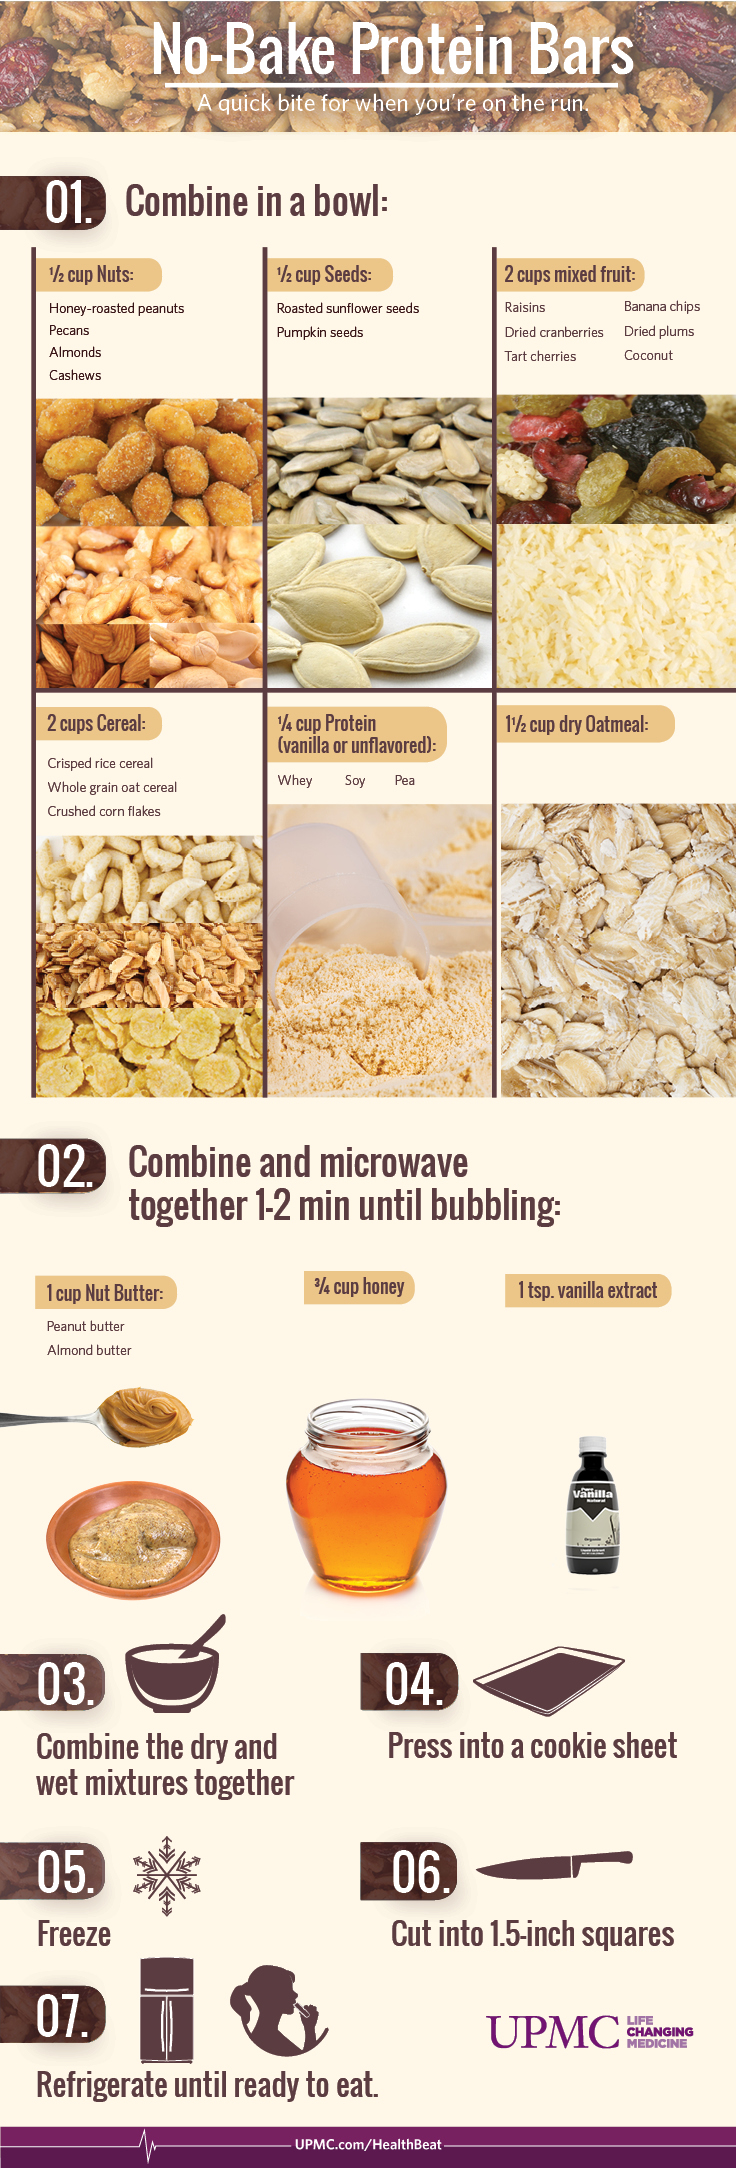 Infographic about No-Bake Protein Bars